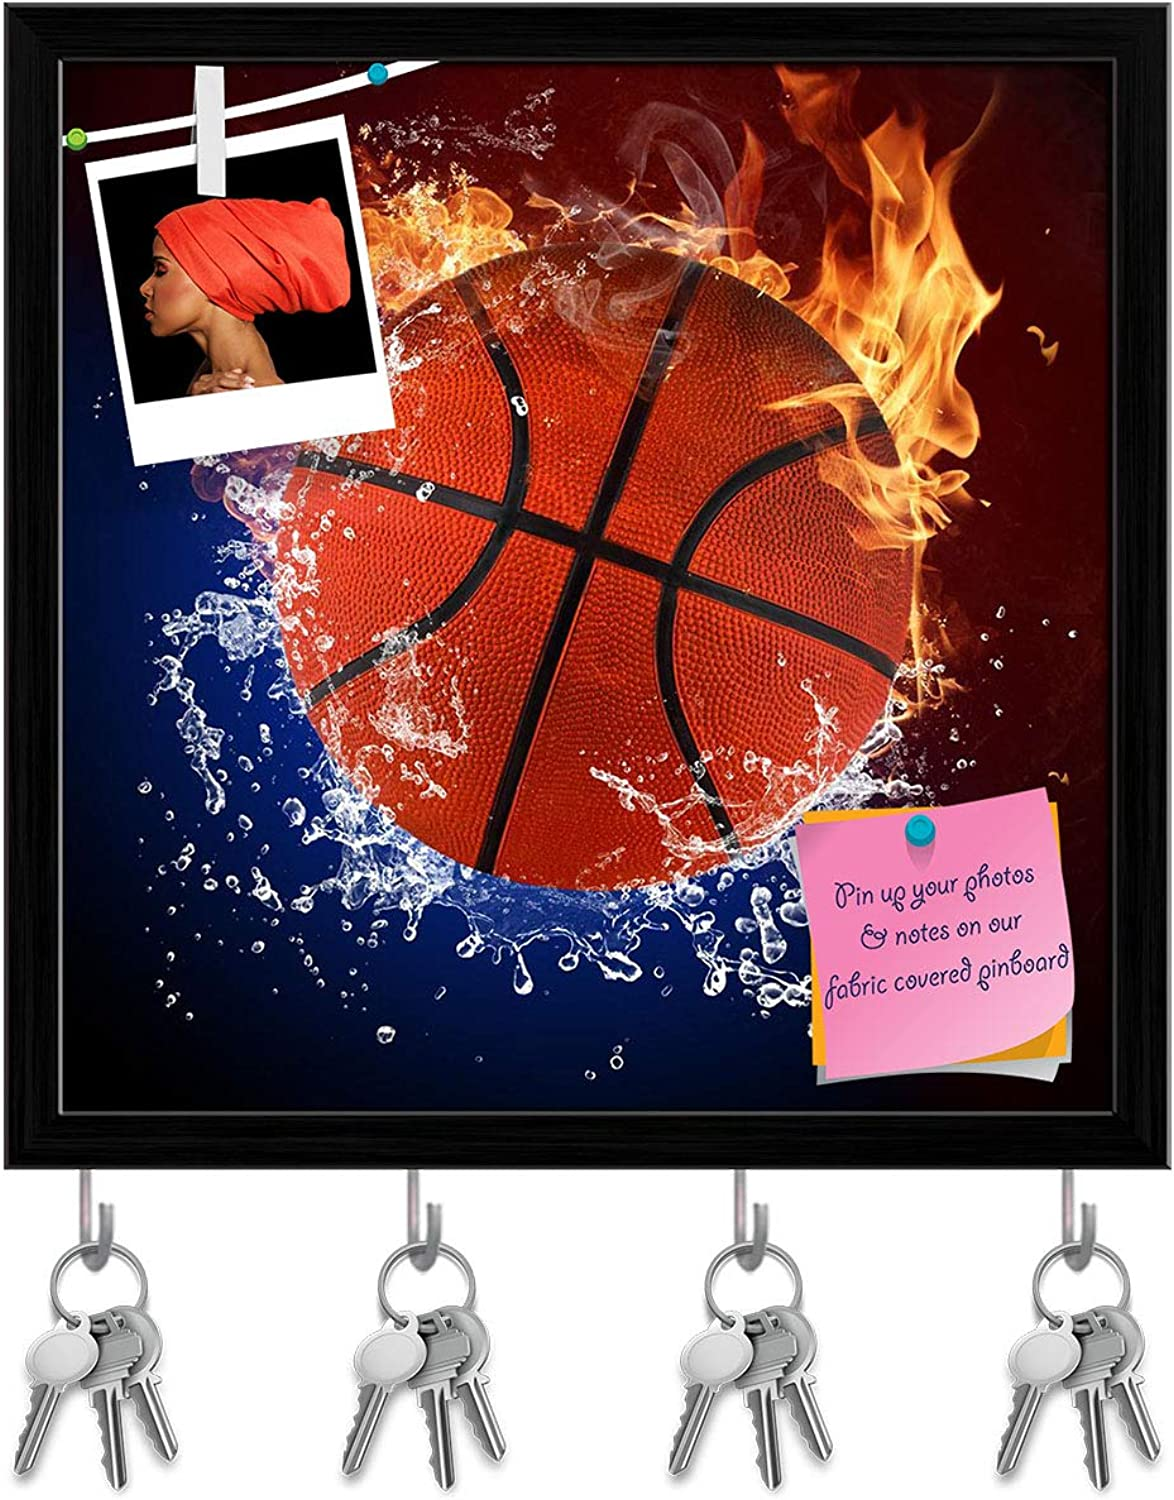 Artzfolio Basketball Ball in Fire Flames & Splashing Water Key Holder Hooks   Notice Pin Board   Black Frame 20 X 20Inch